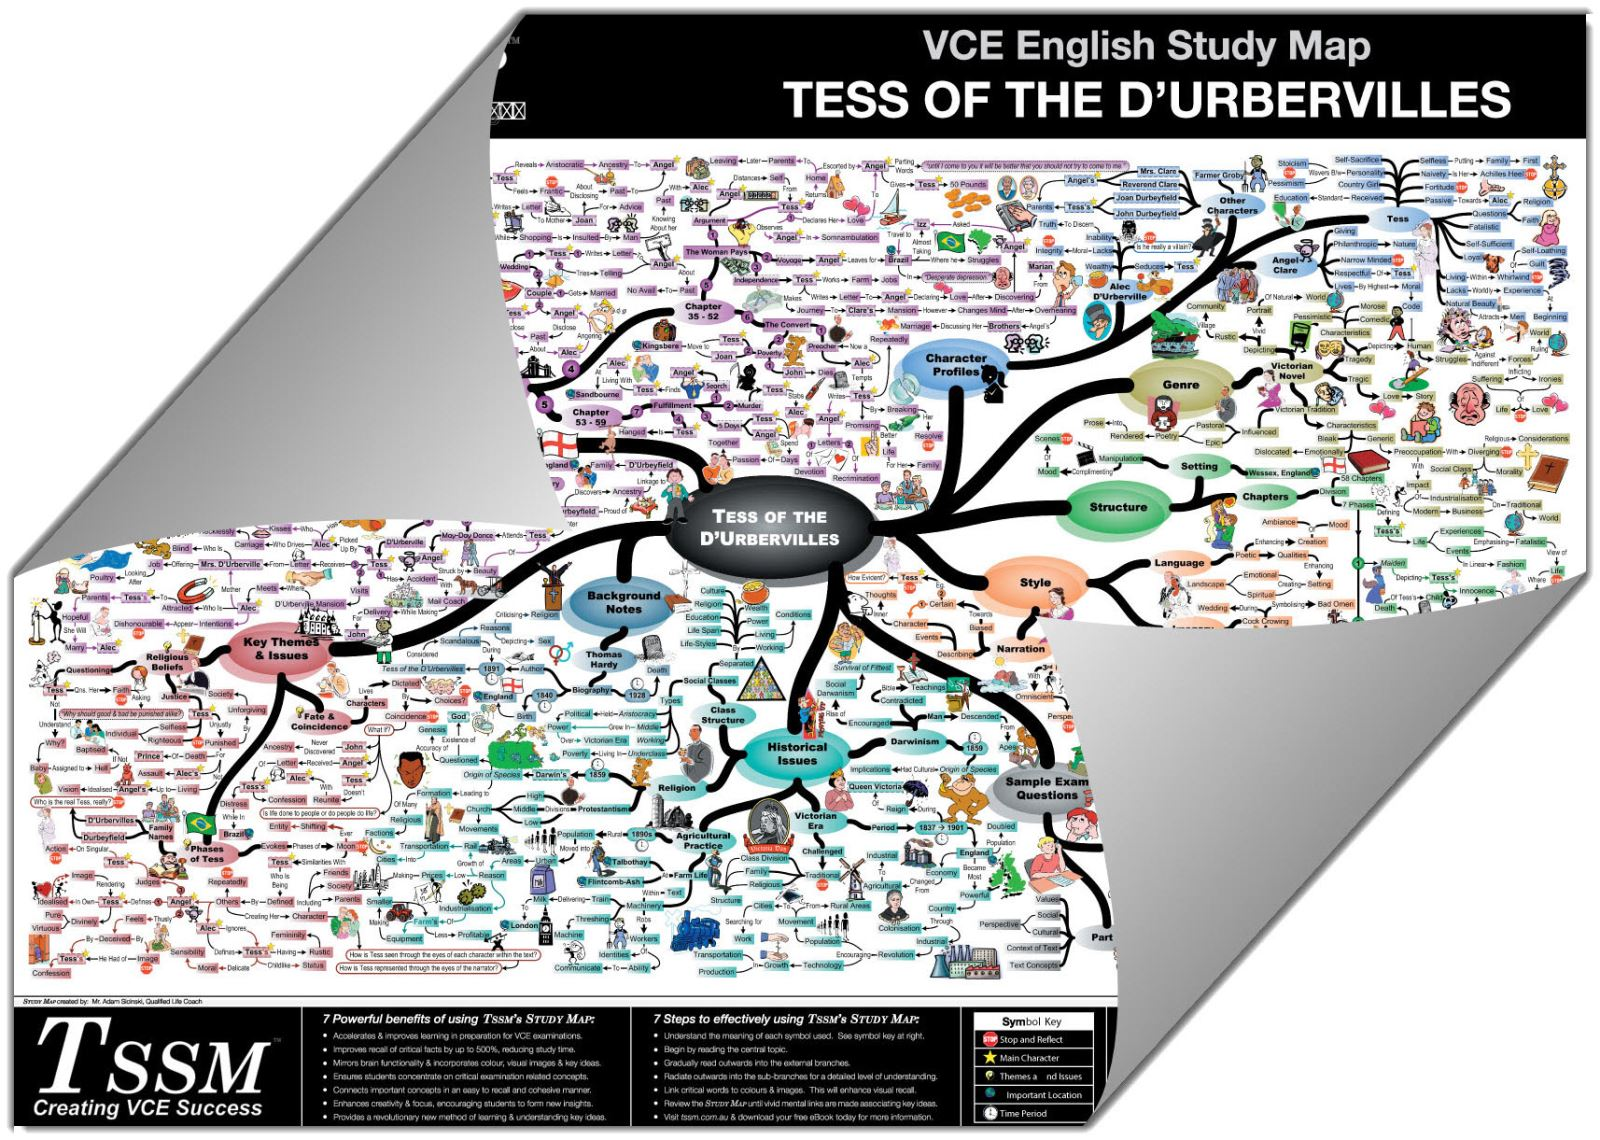 vce tess of the d urbervilles study map an example of the study map is shown below